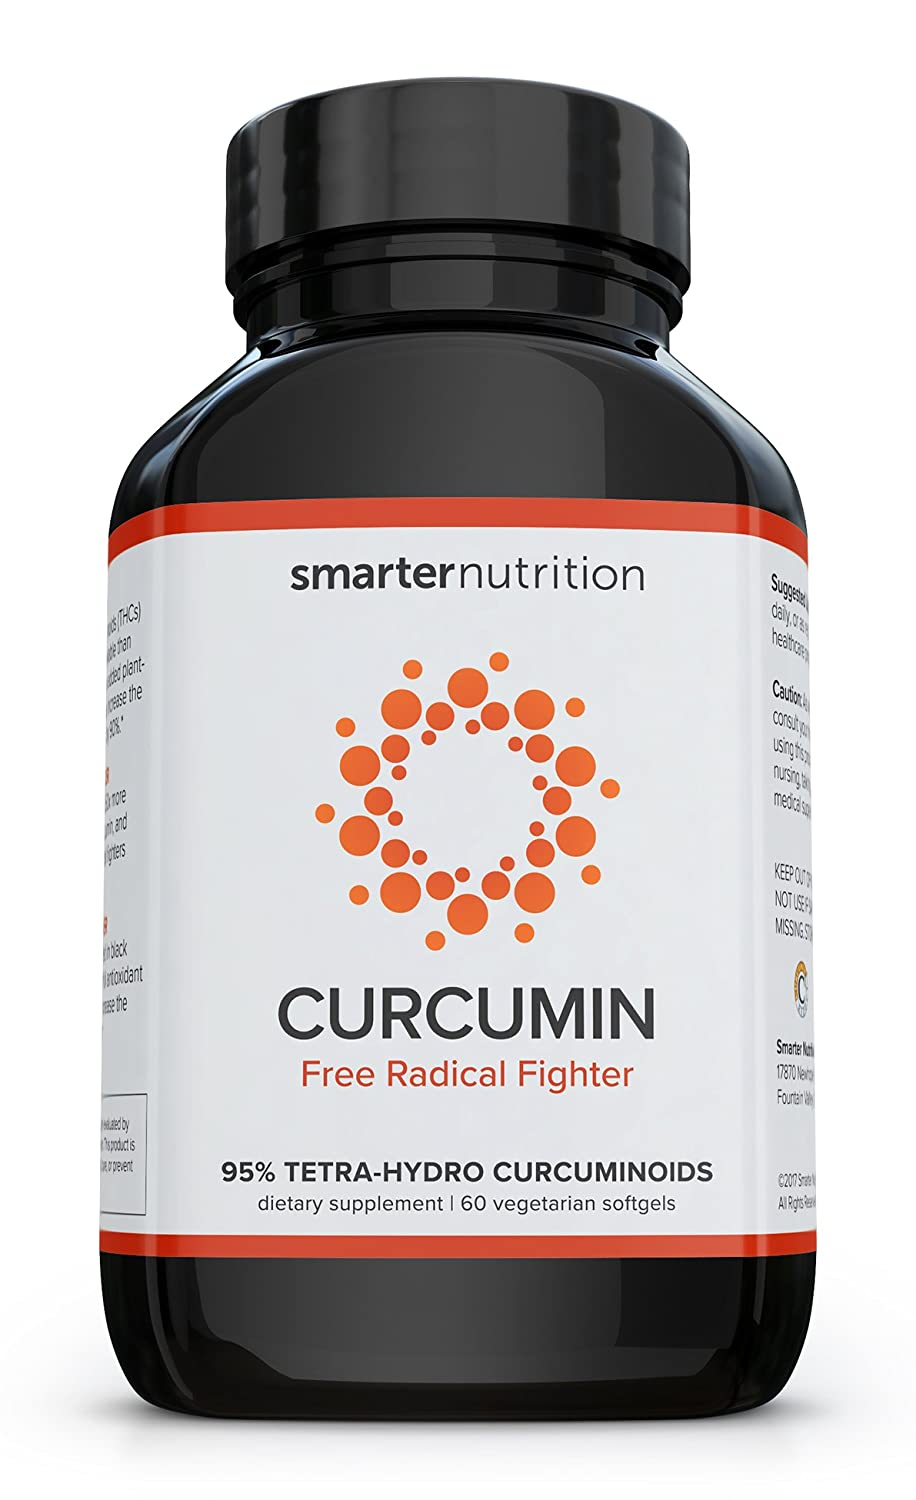 Smarter Turmeric Curcumin – Potency and Absorption in a SoftGel The Most Active Form of Curcuminoid Found in the Turmeric Root 95 Tetra-Hydro Curcuminoids 60 Count – 1 Month Supply